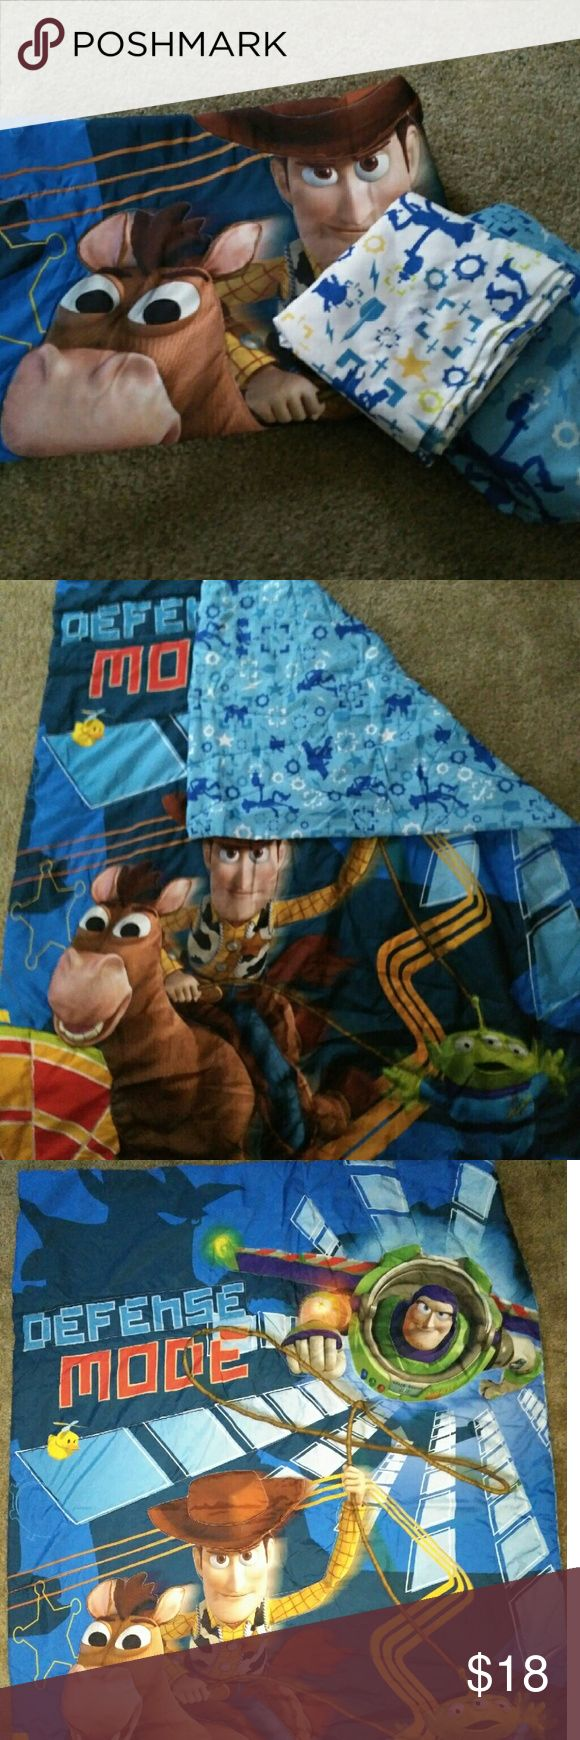 Jessie from toy story bedding - Toy Story Toddler Bedding Set Euc Toy Story Toddler Bedding Set Includes Fitted Sheet